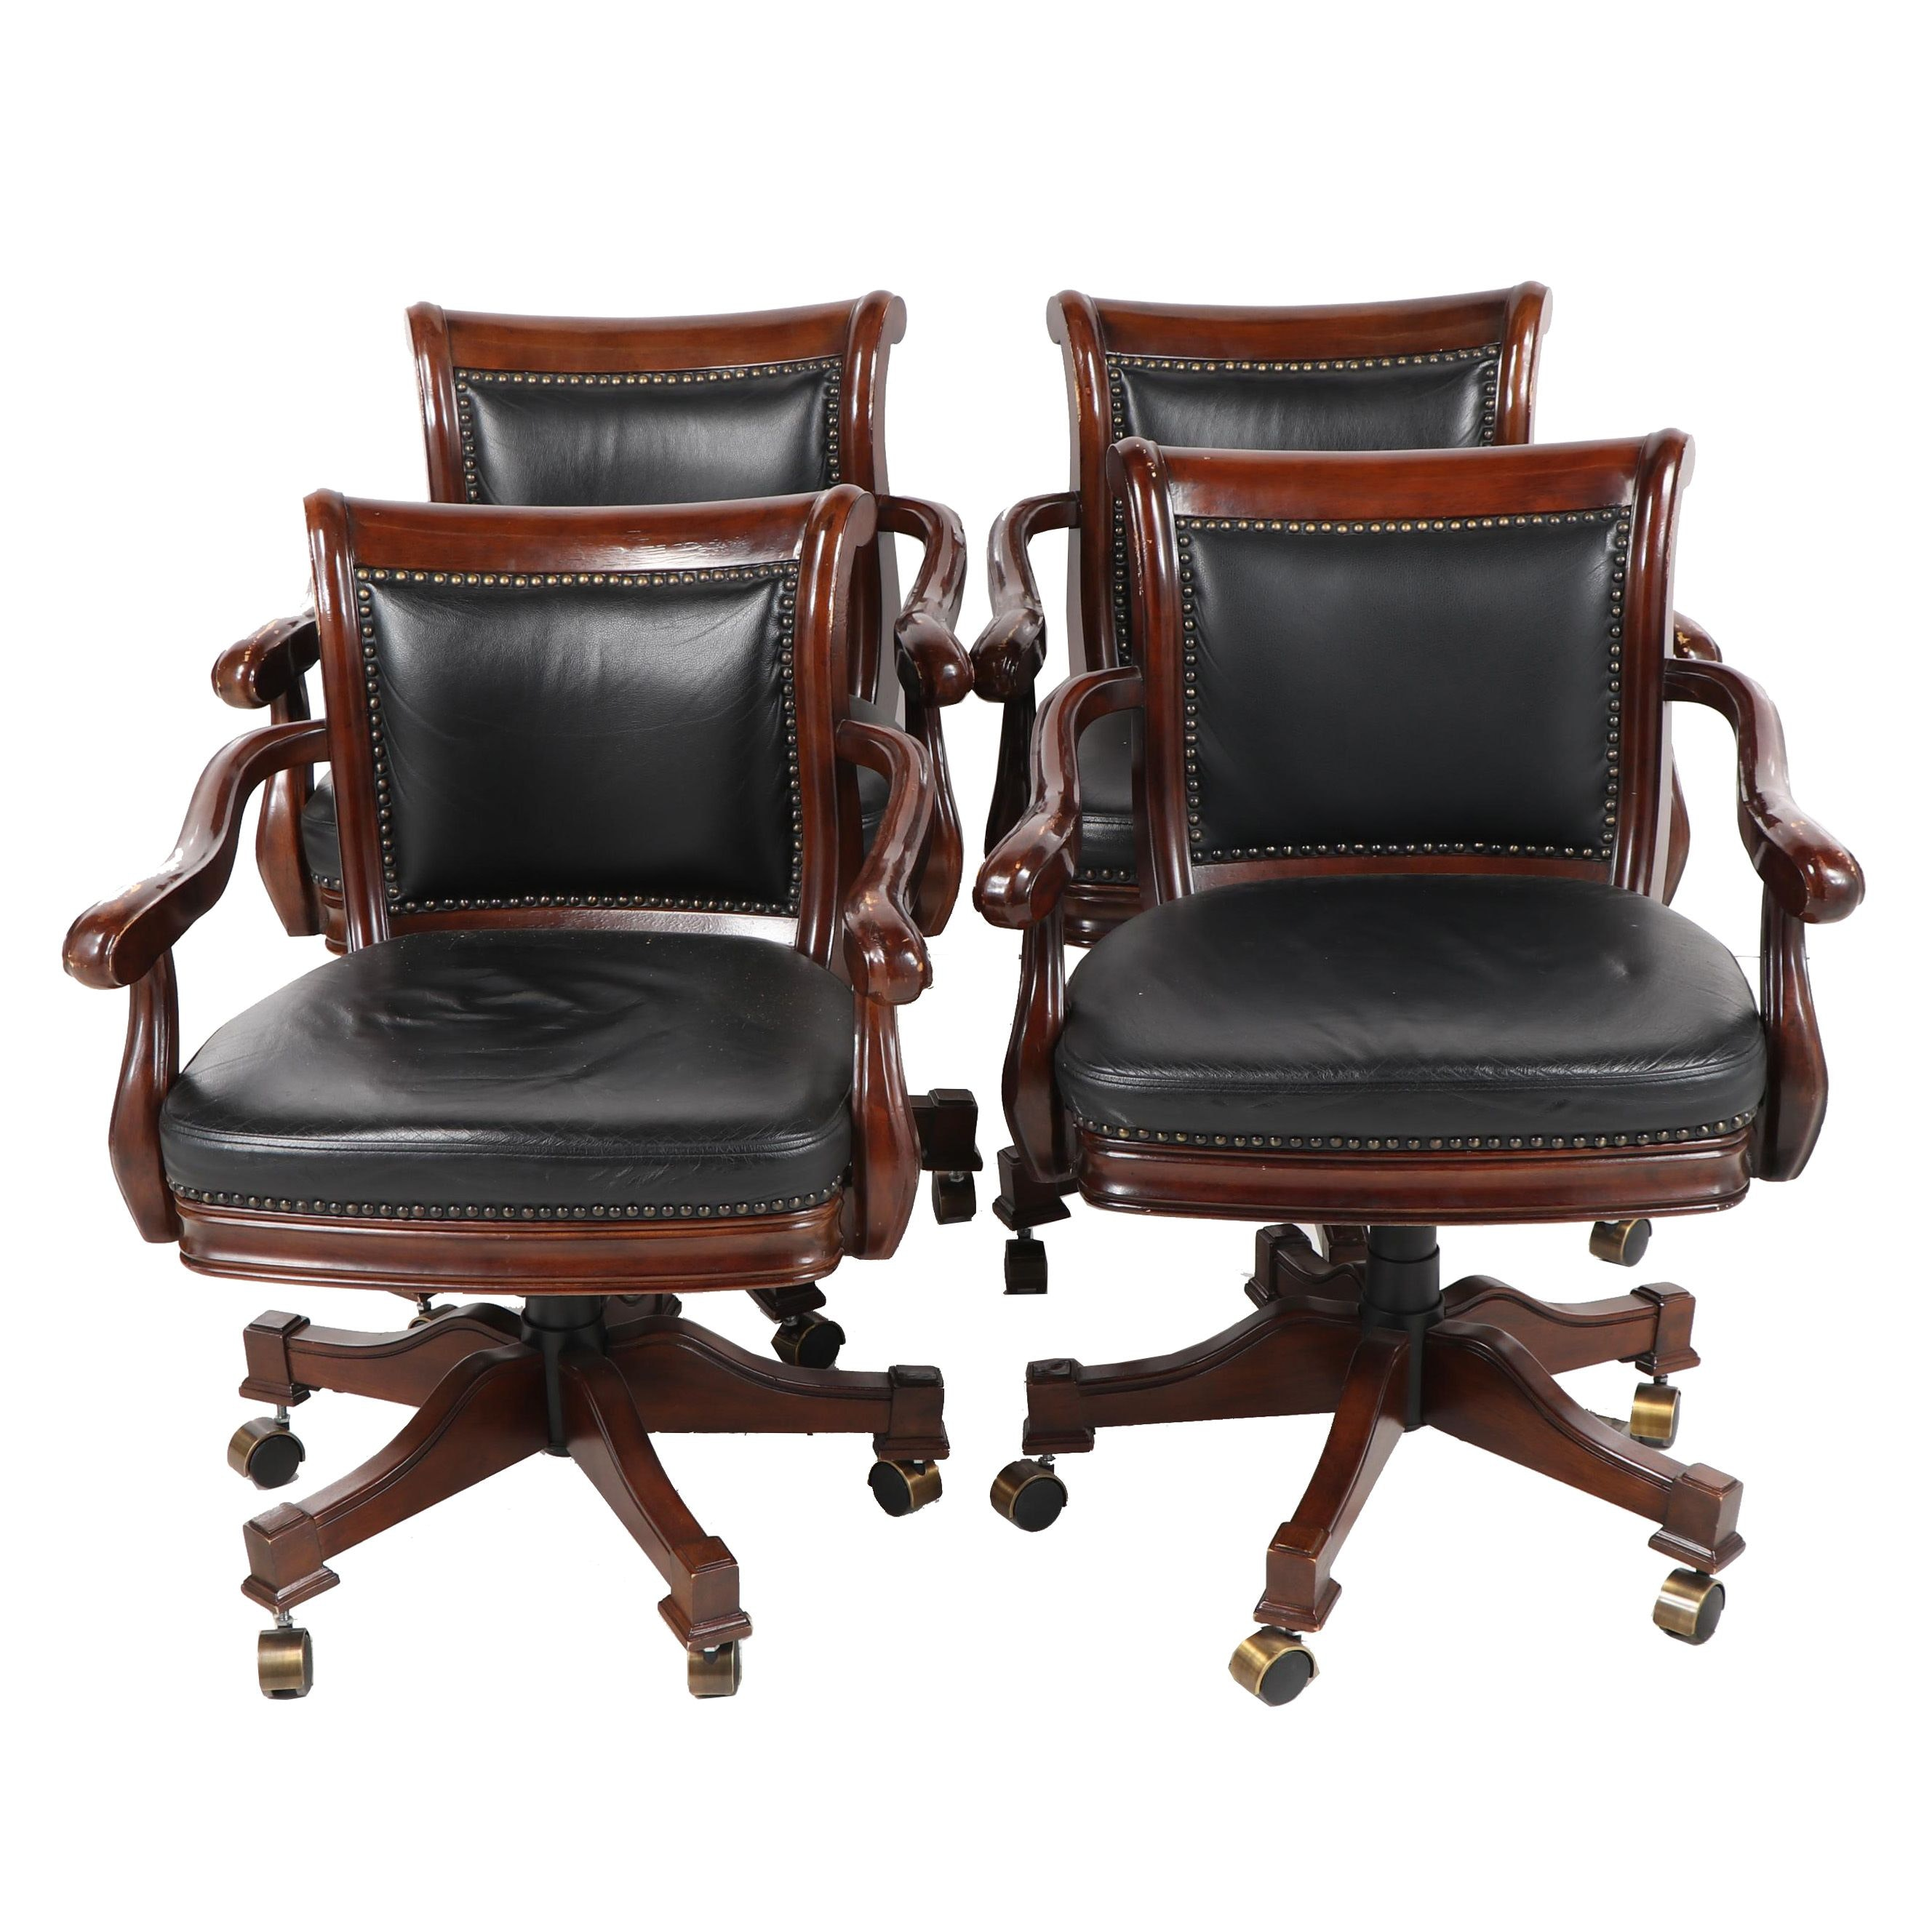 Leather Upholstered Stained Poplar Office Armchairs on Casters, 20th Century